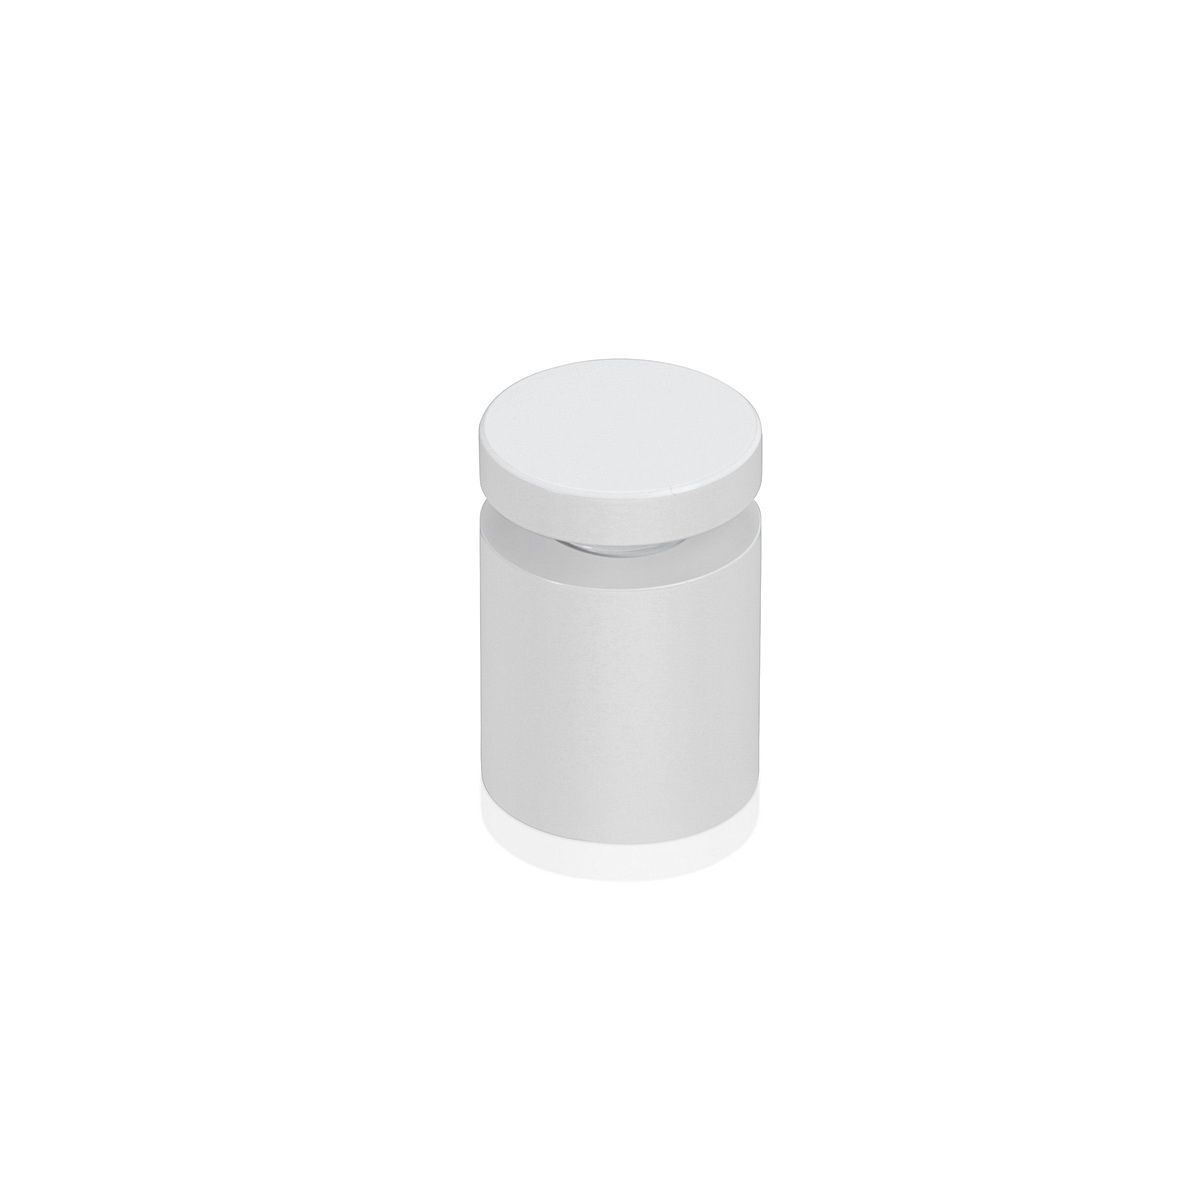 Affordable Aluminum Standoffs, Diameter: 3/4'', Standoff: 3/4'', Aluminum White Coated Finish